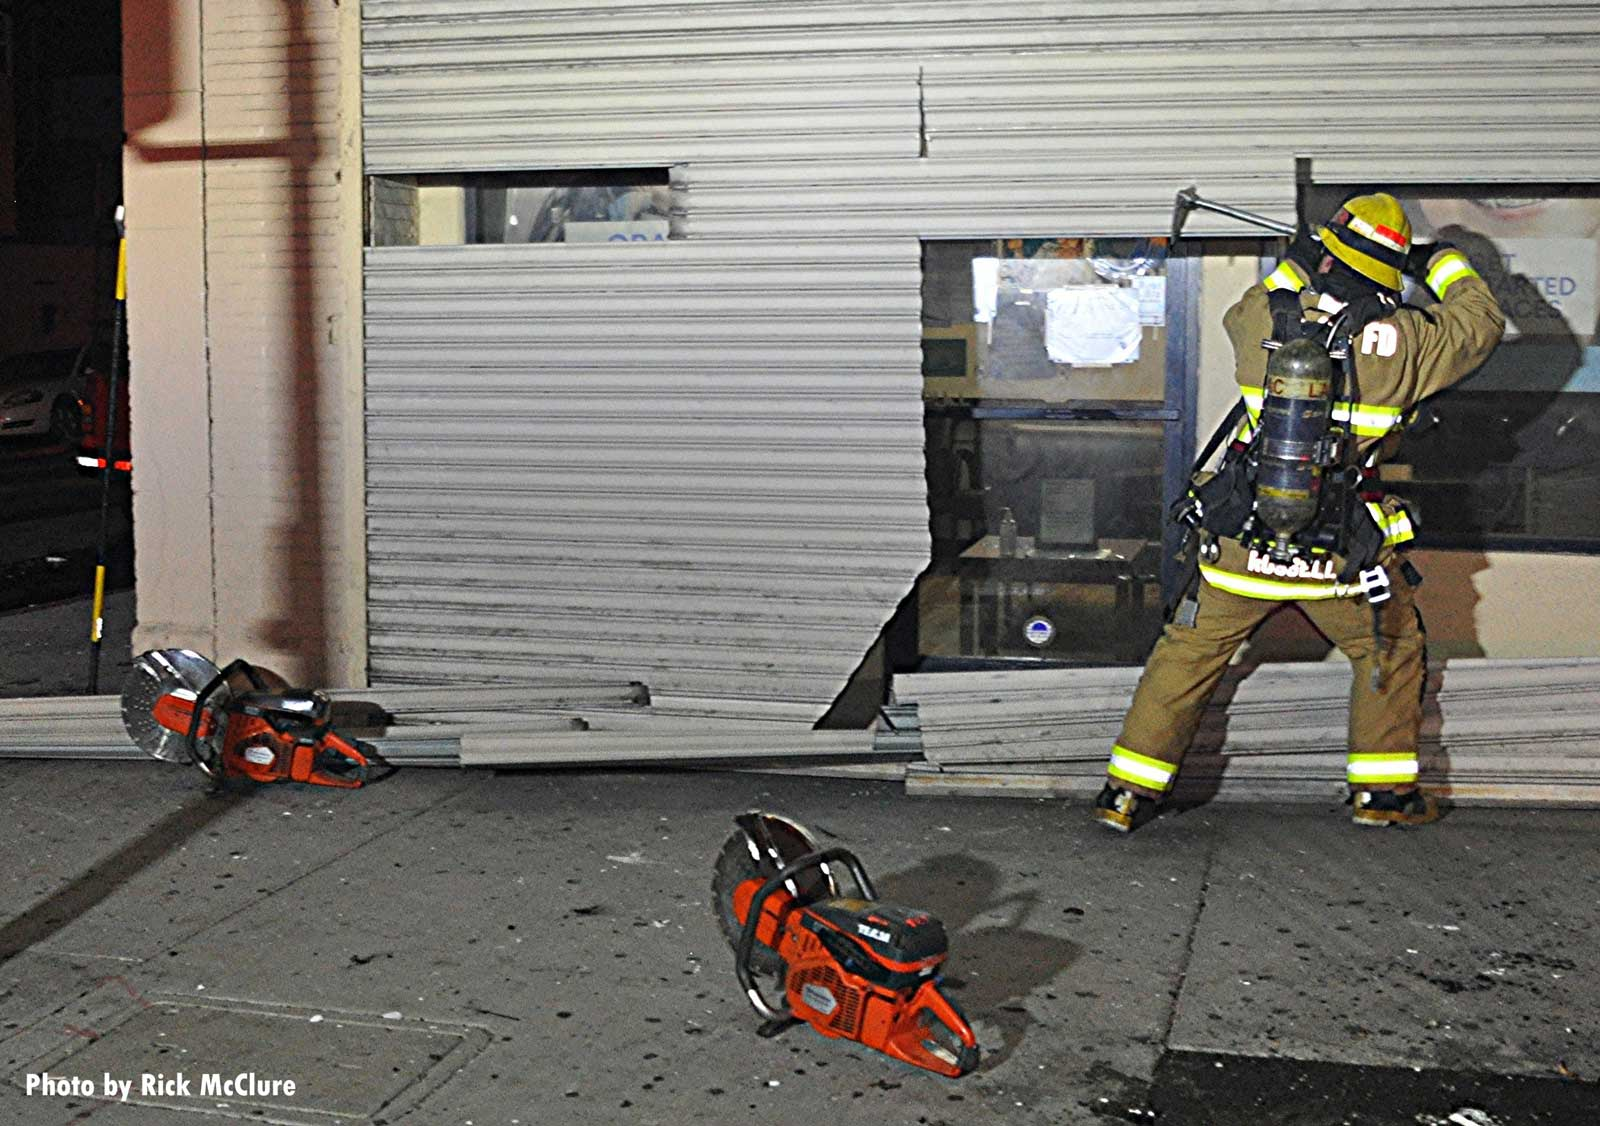 Firefighte rmaking multiple cuts in metal roll-down gate for forcible entry at fire